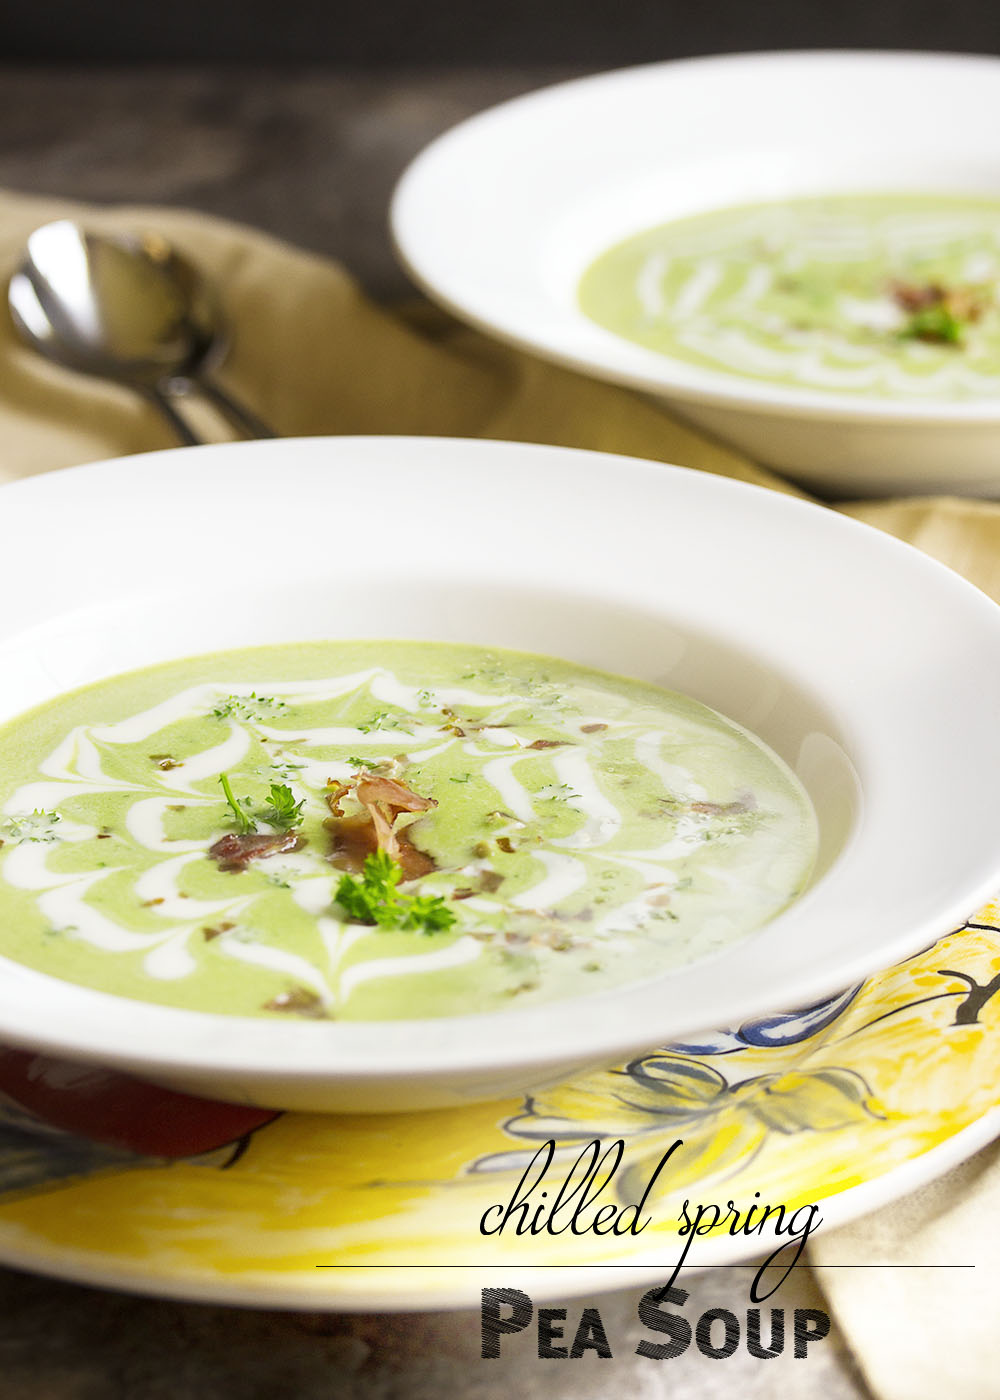 Chilled Spring Pea Soup - This elegant and easy chilled pea soup is full of fresh flavor and is great as a light meal or the first course of a celebration dinner. | justalittlebitofbacon.com